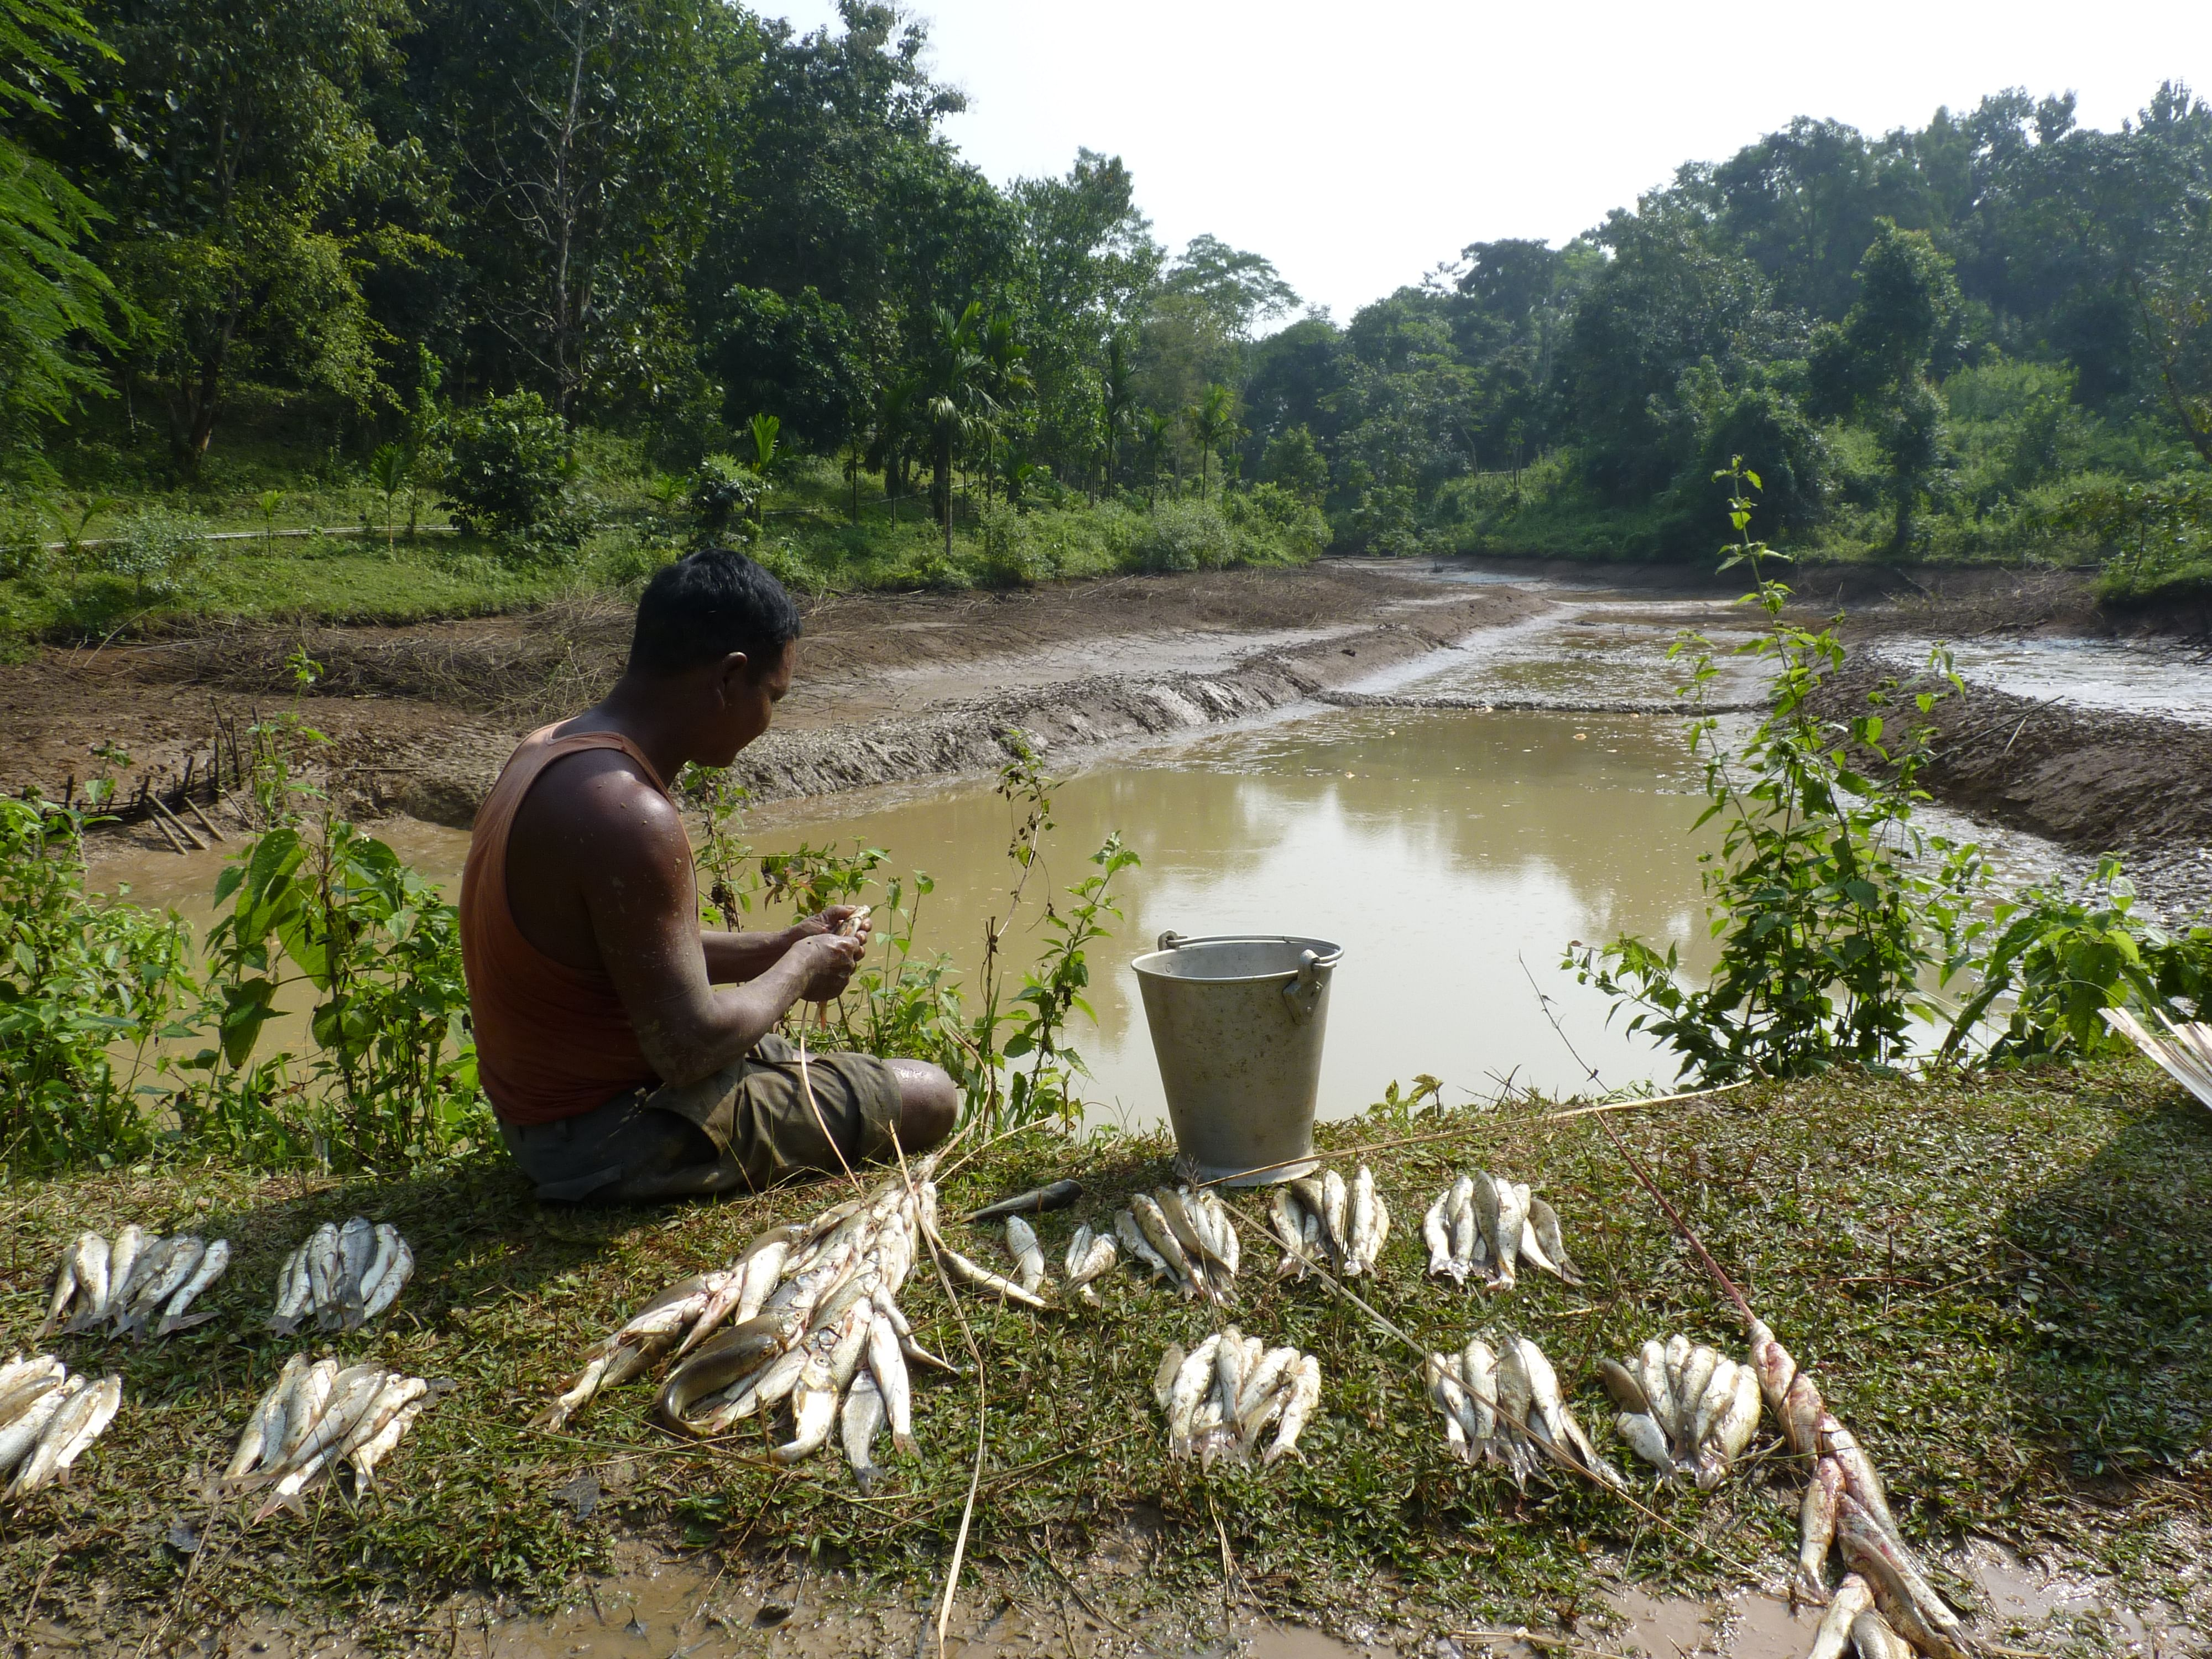 Meghalaya Govt Peon Builds Fish Ponds With Own His Hands, Sells 800kg of Fish/Year